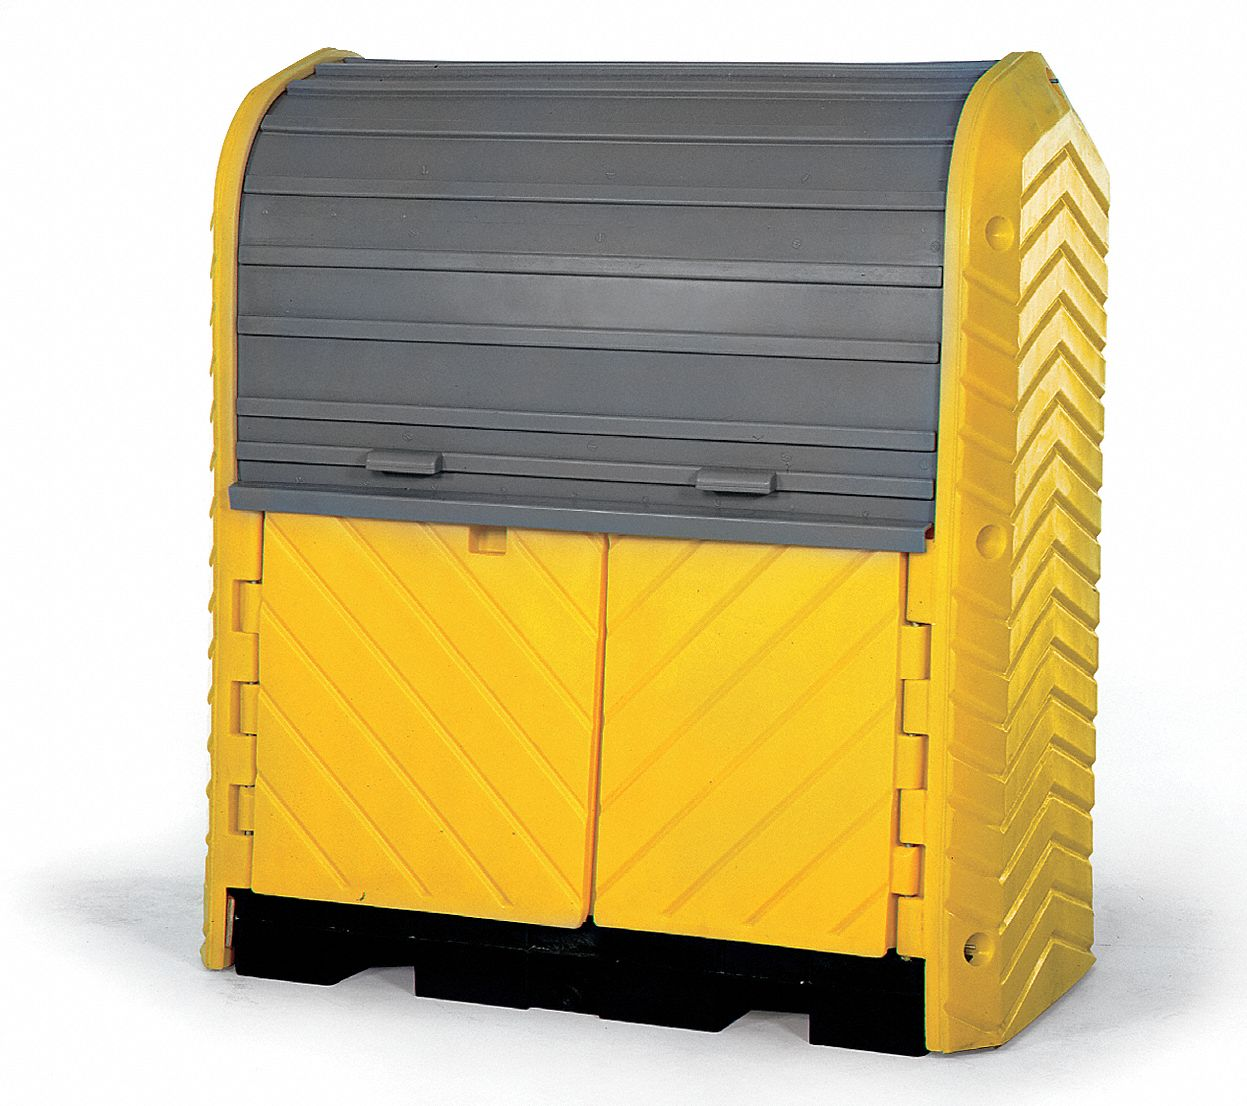 Ultra Tech Containment : Ultratech rolltop drum spl contnmnt fty